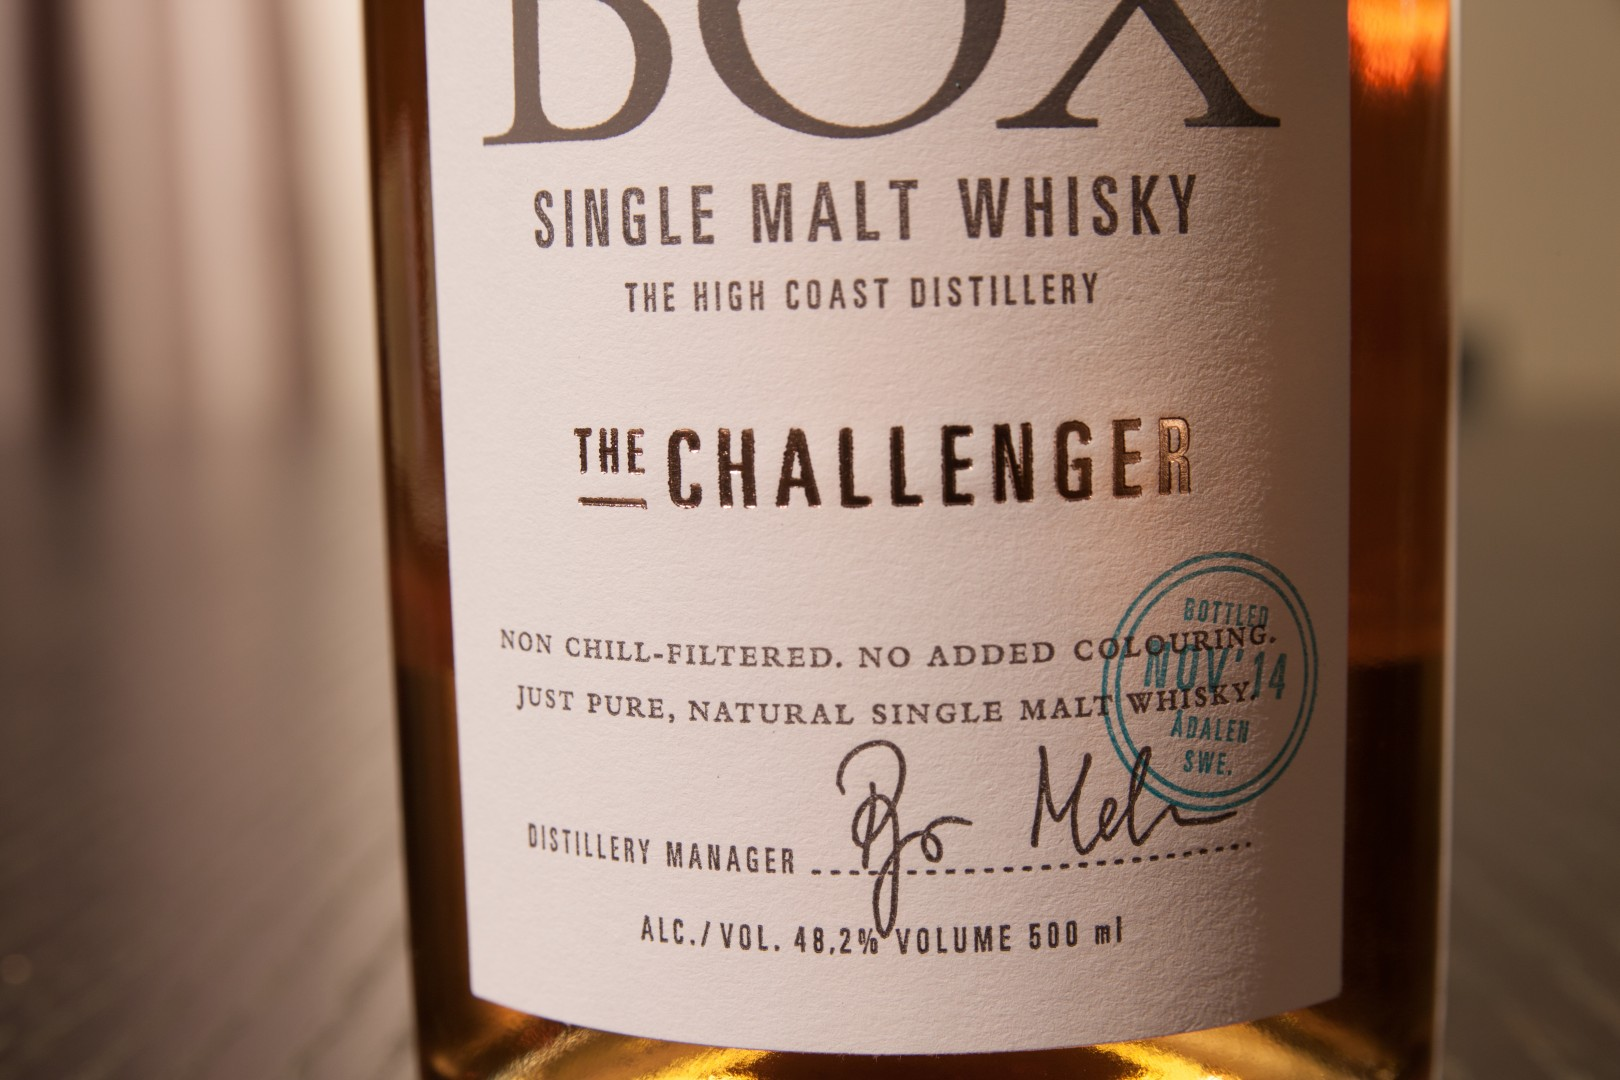 box_challenger_bottle